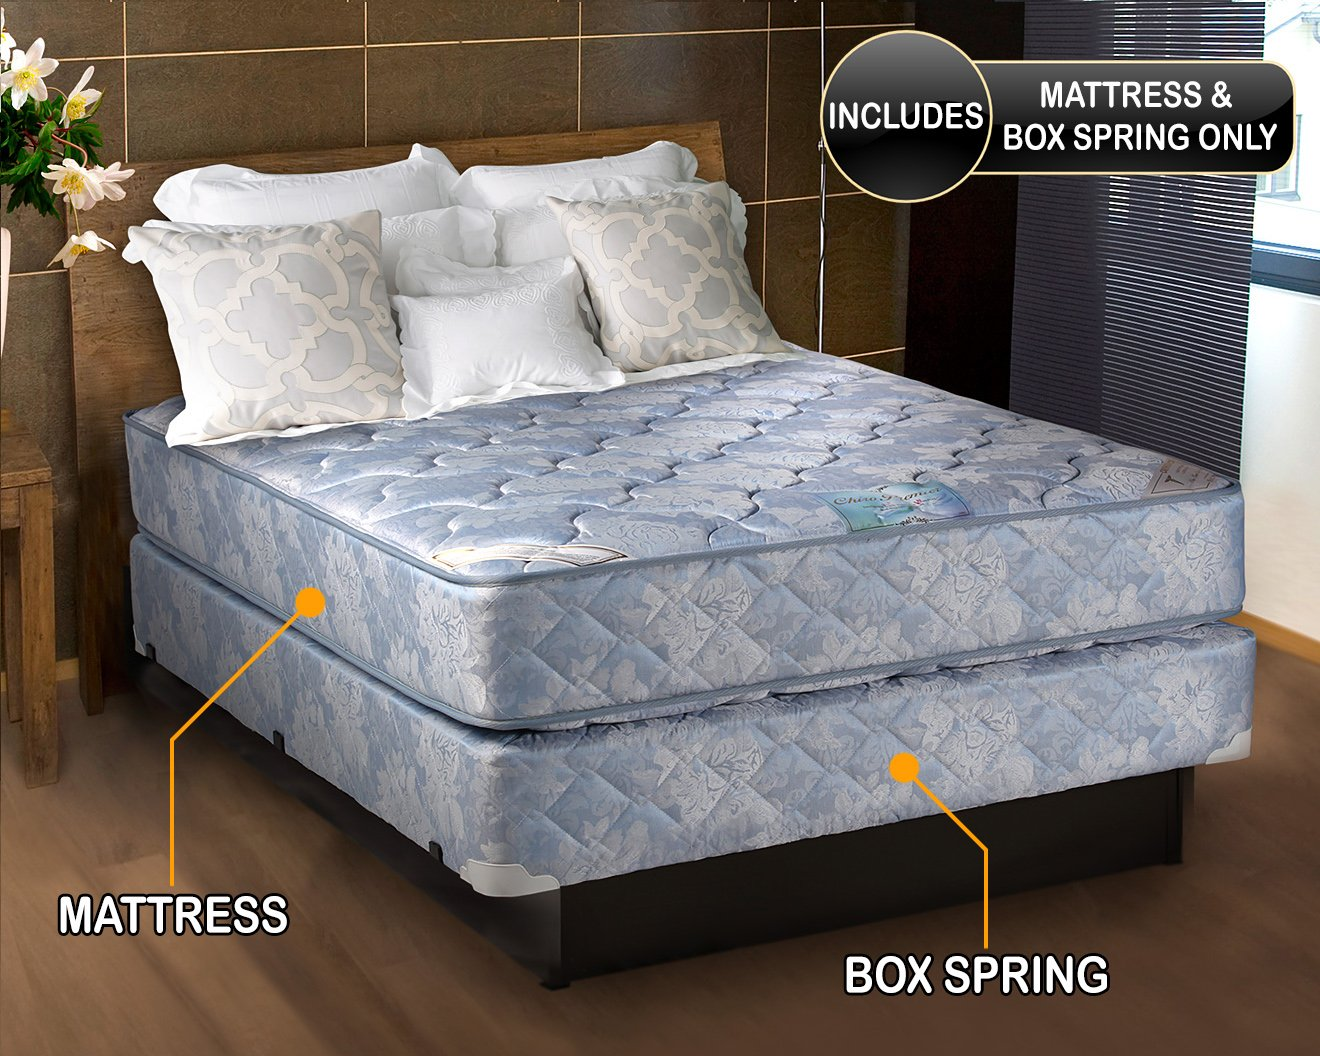 Dream Solutions USA Orthopedic Mattress Review by www.snoremagazine.com